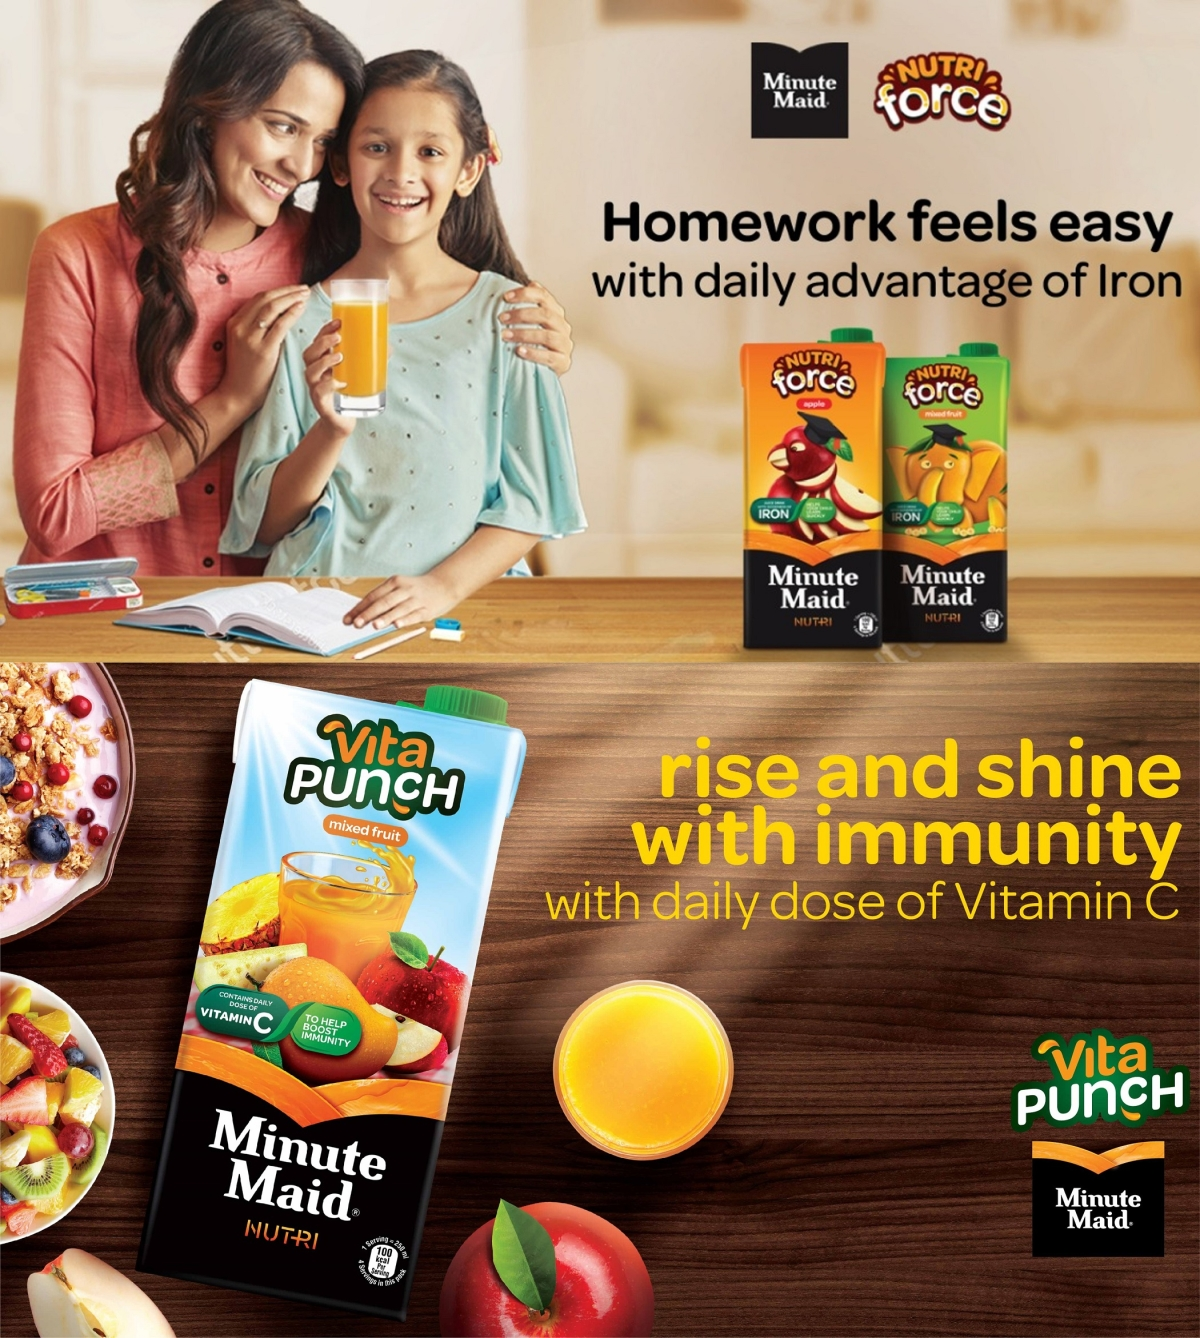 Minute Maid Nutri Force and Minute Maid Vita Punch